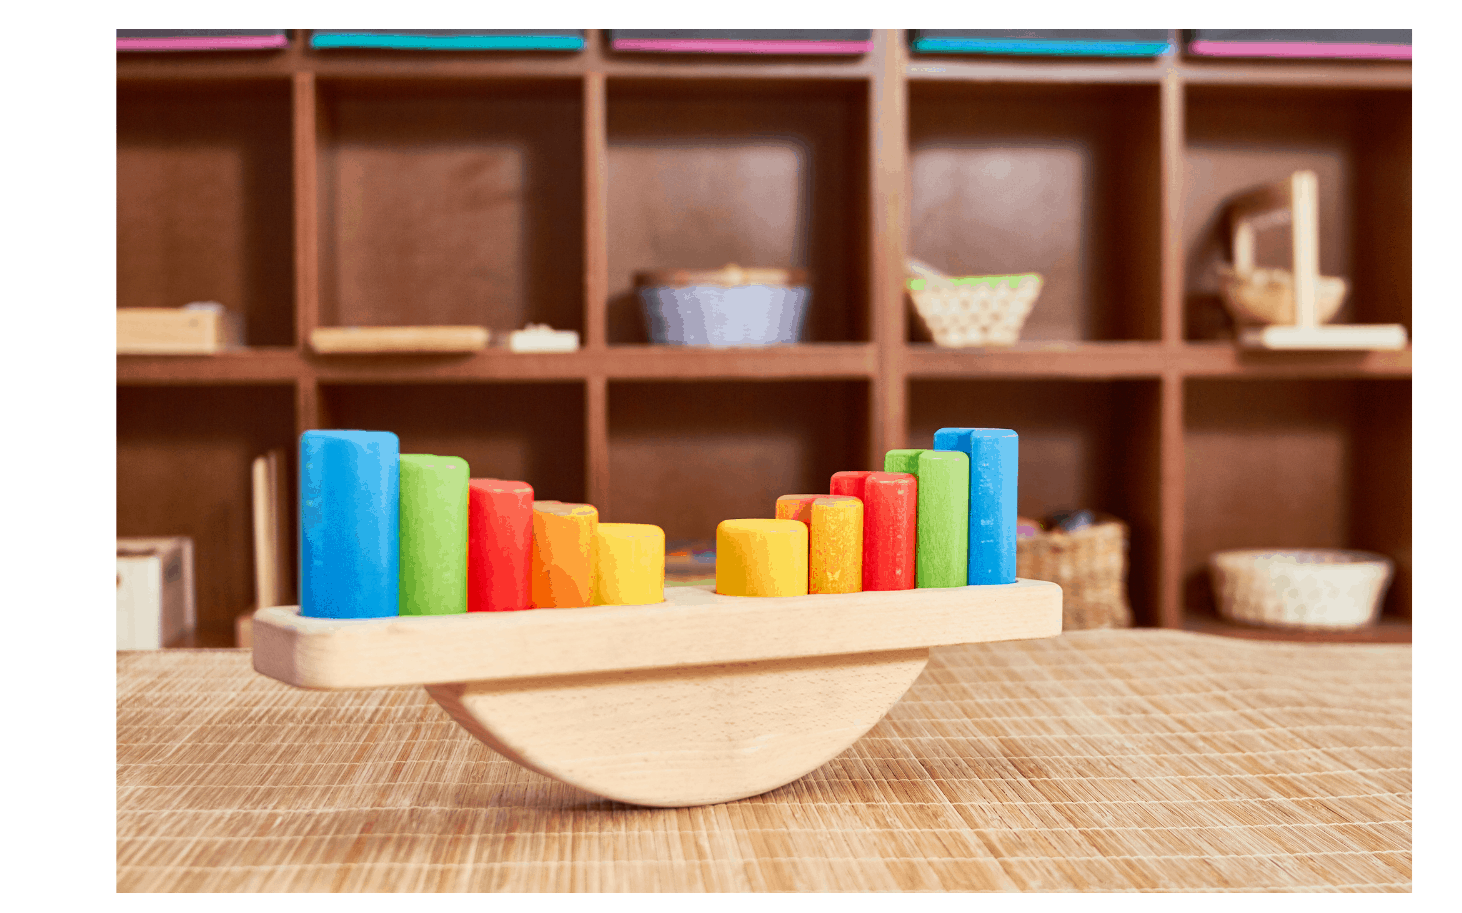 Montessori educational toys on clean wooden shelves